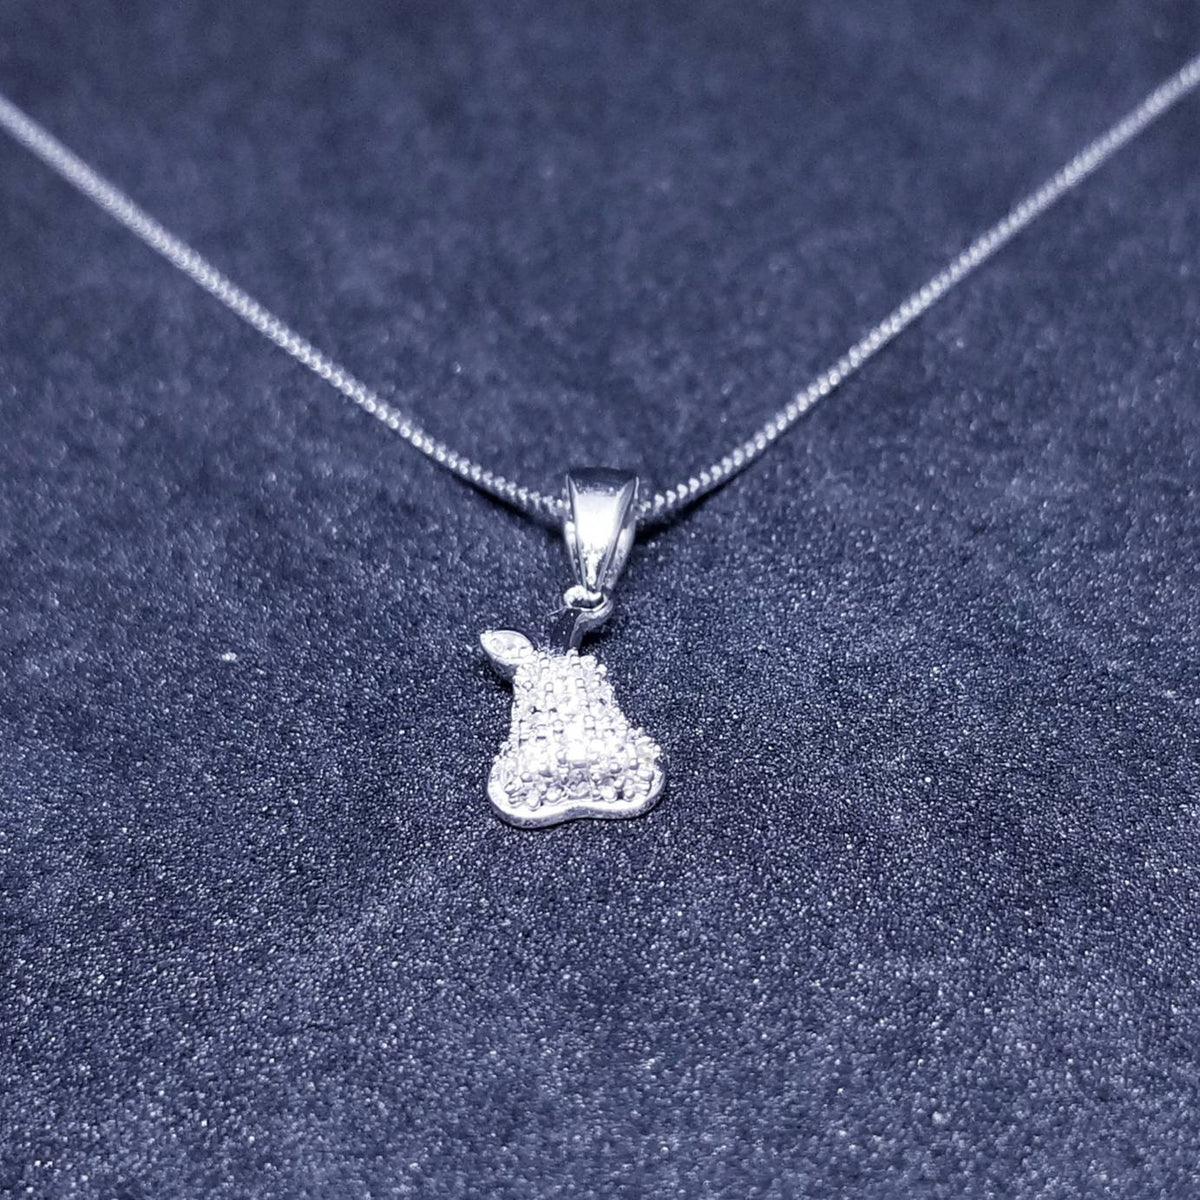 New 14k White Gold On 925 Sterling Silver Small Cute Pear with One Leaf CZ Stones Pendant Free Chain